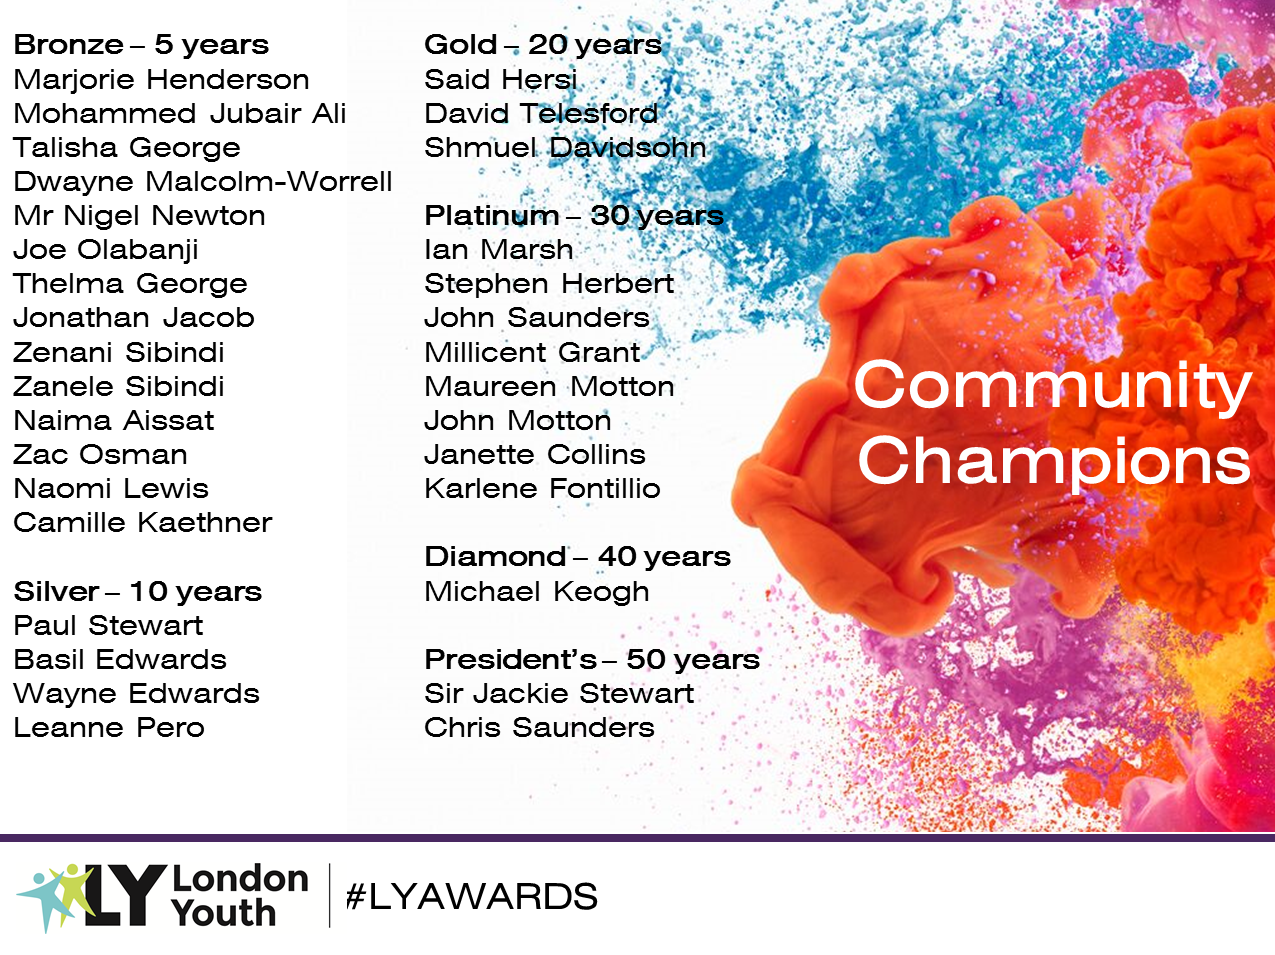 Community Champions - London Youth Awards 2017